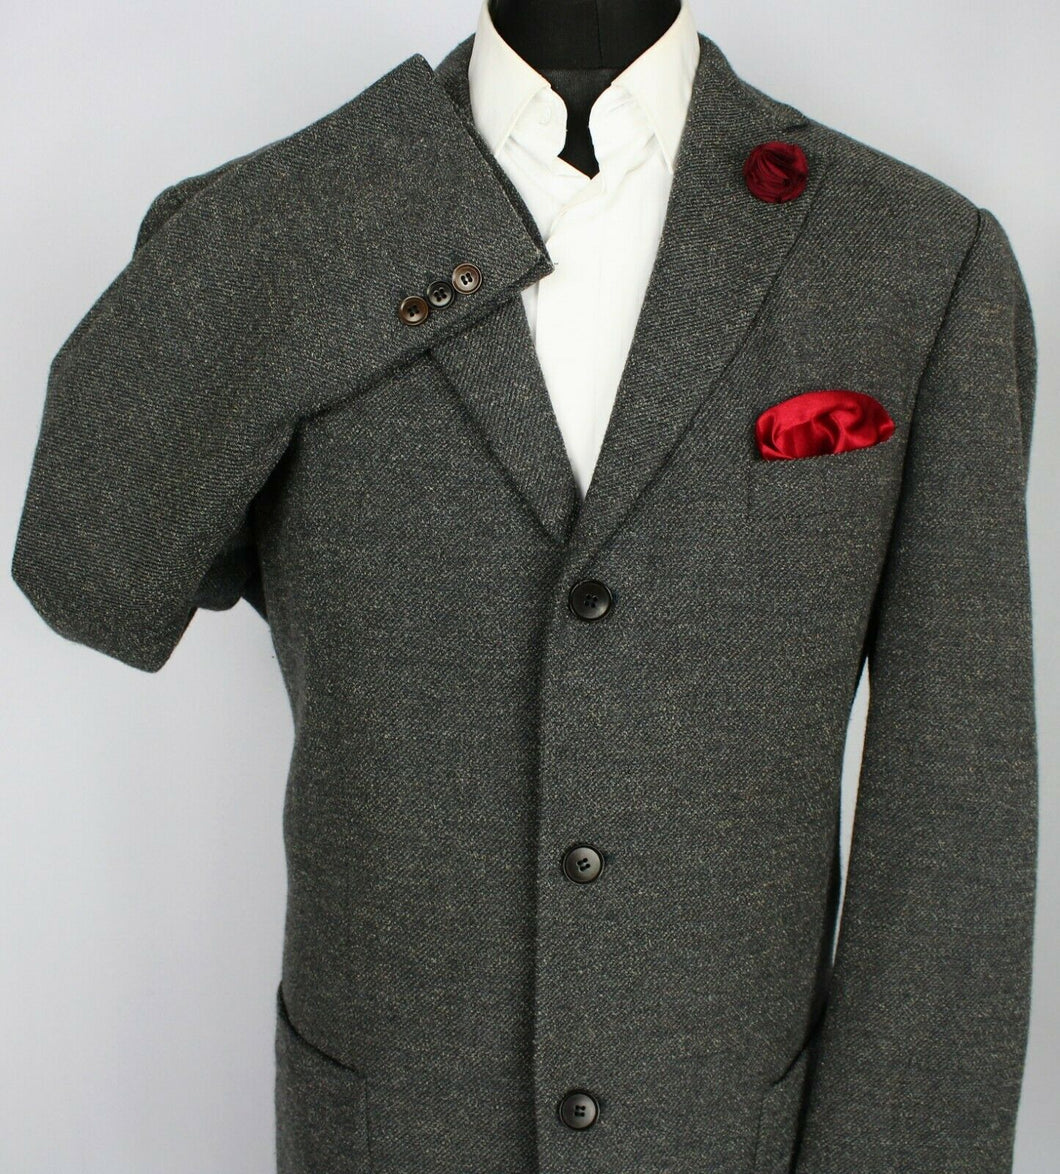 BOSS Blazer Jacket Grey Designer 46L SUPERB QUALITY 3646